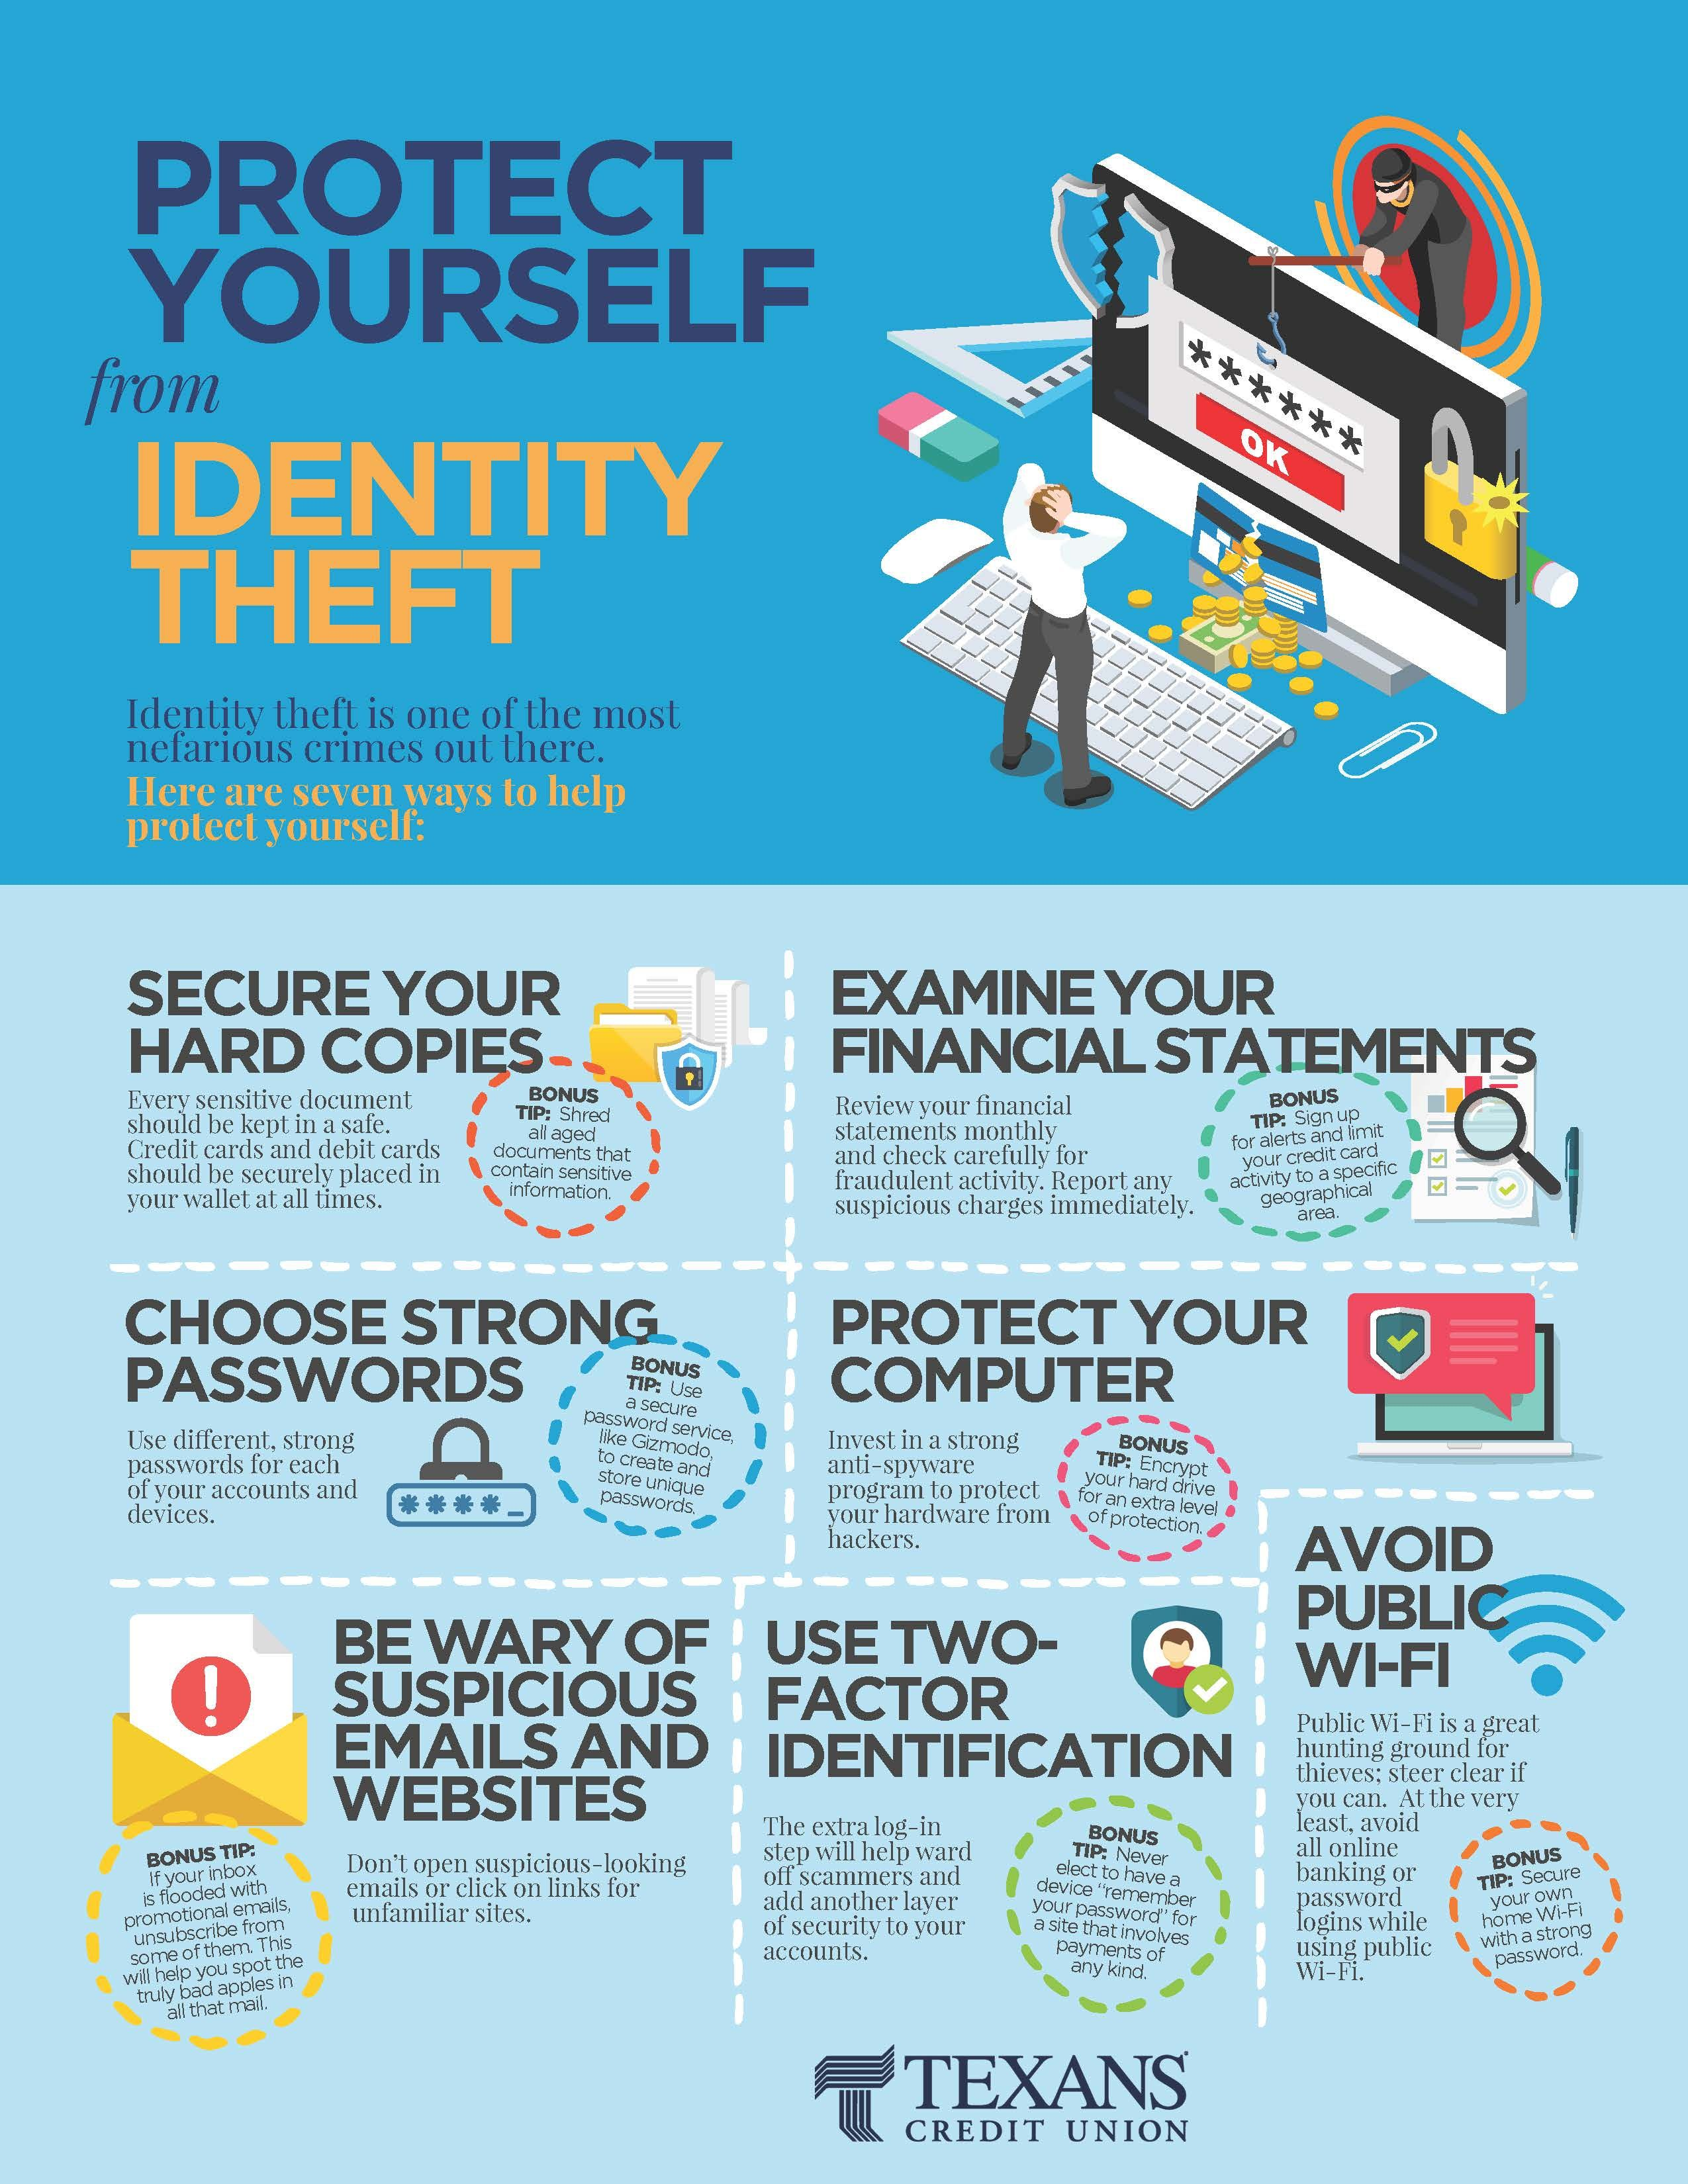 Protect Yourself Against Identity Theft With These Tips